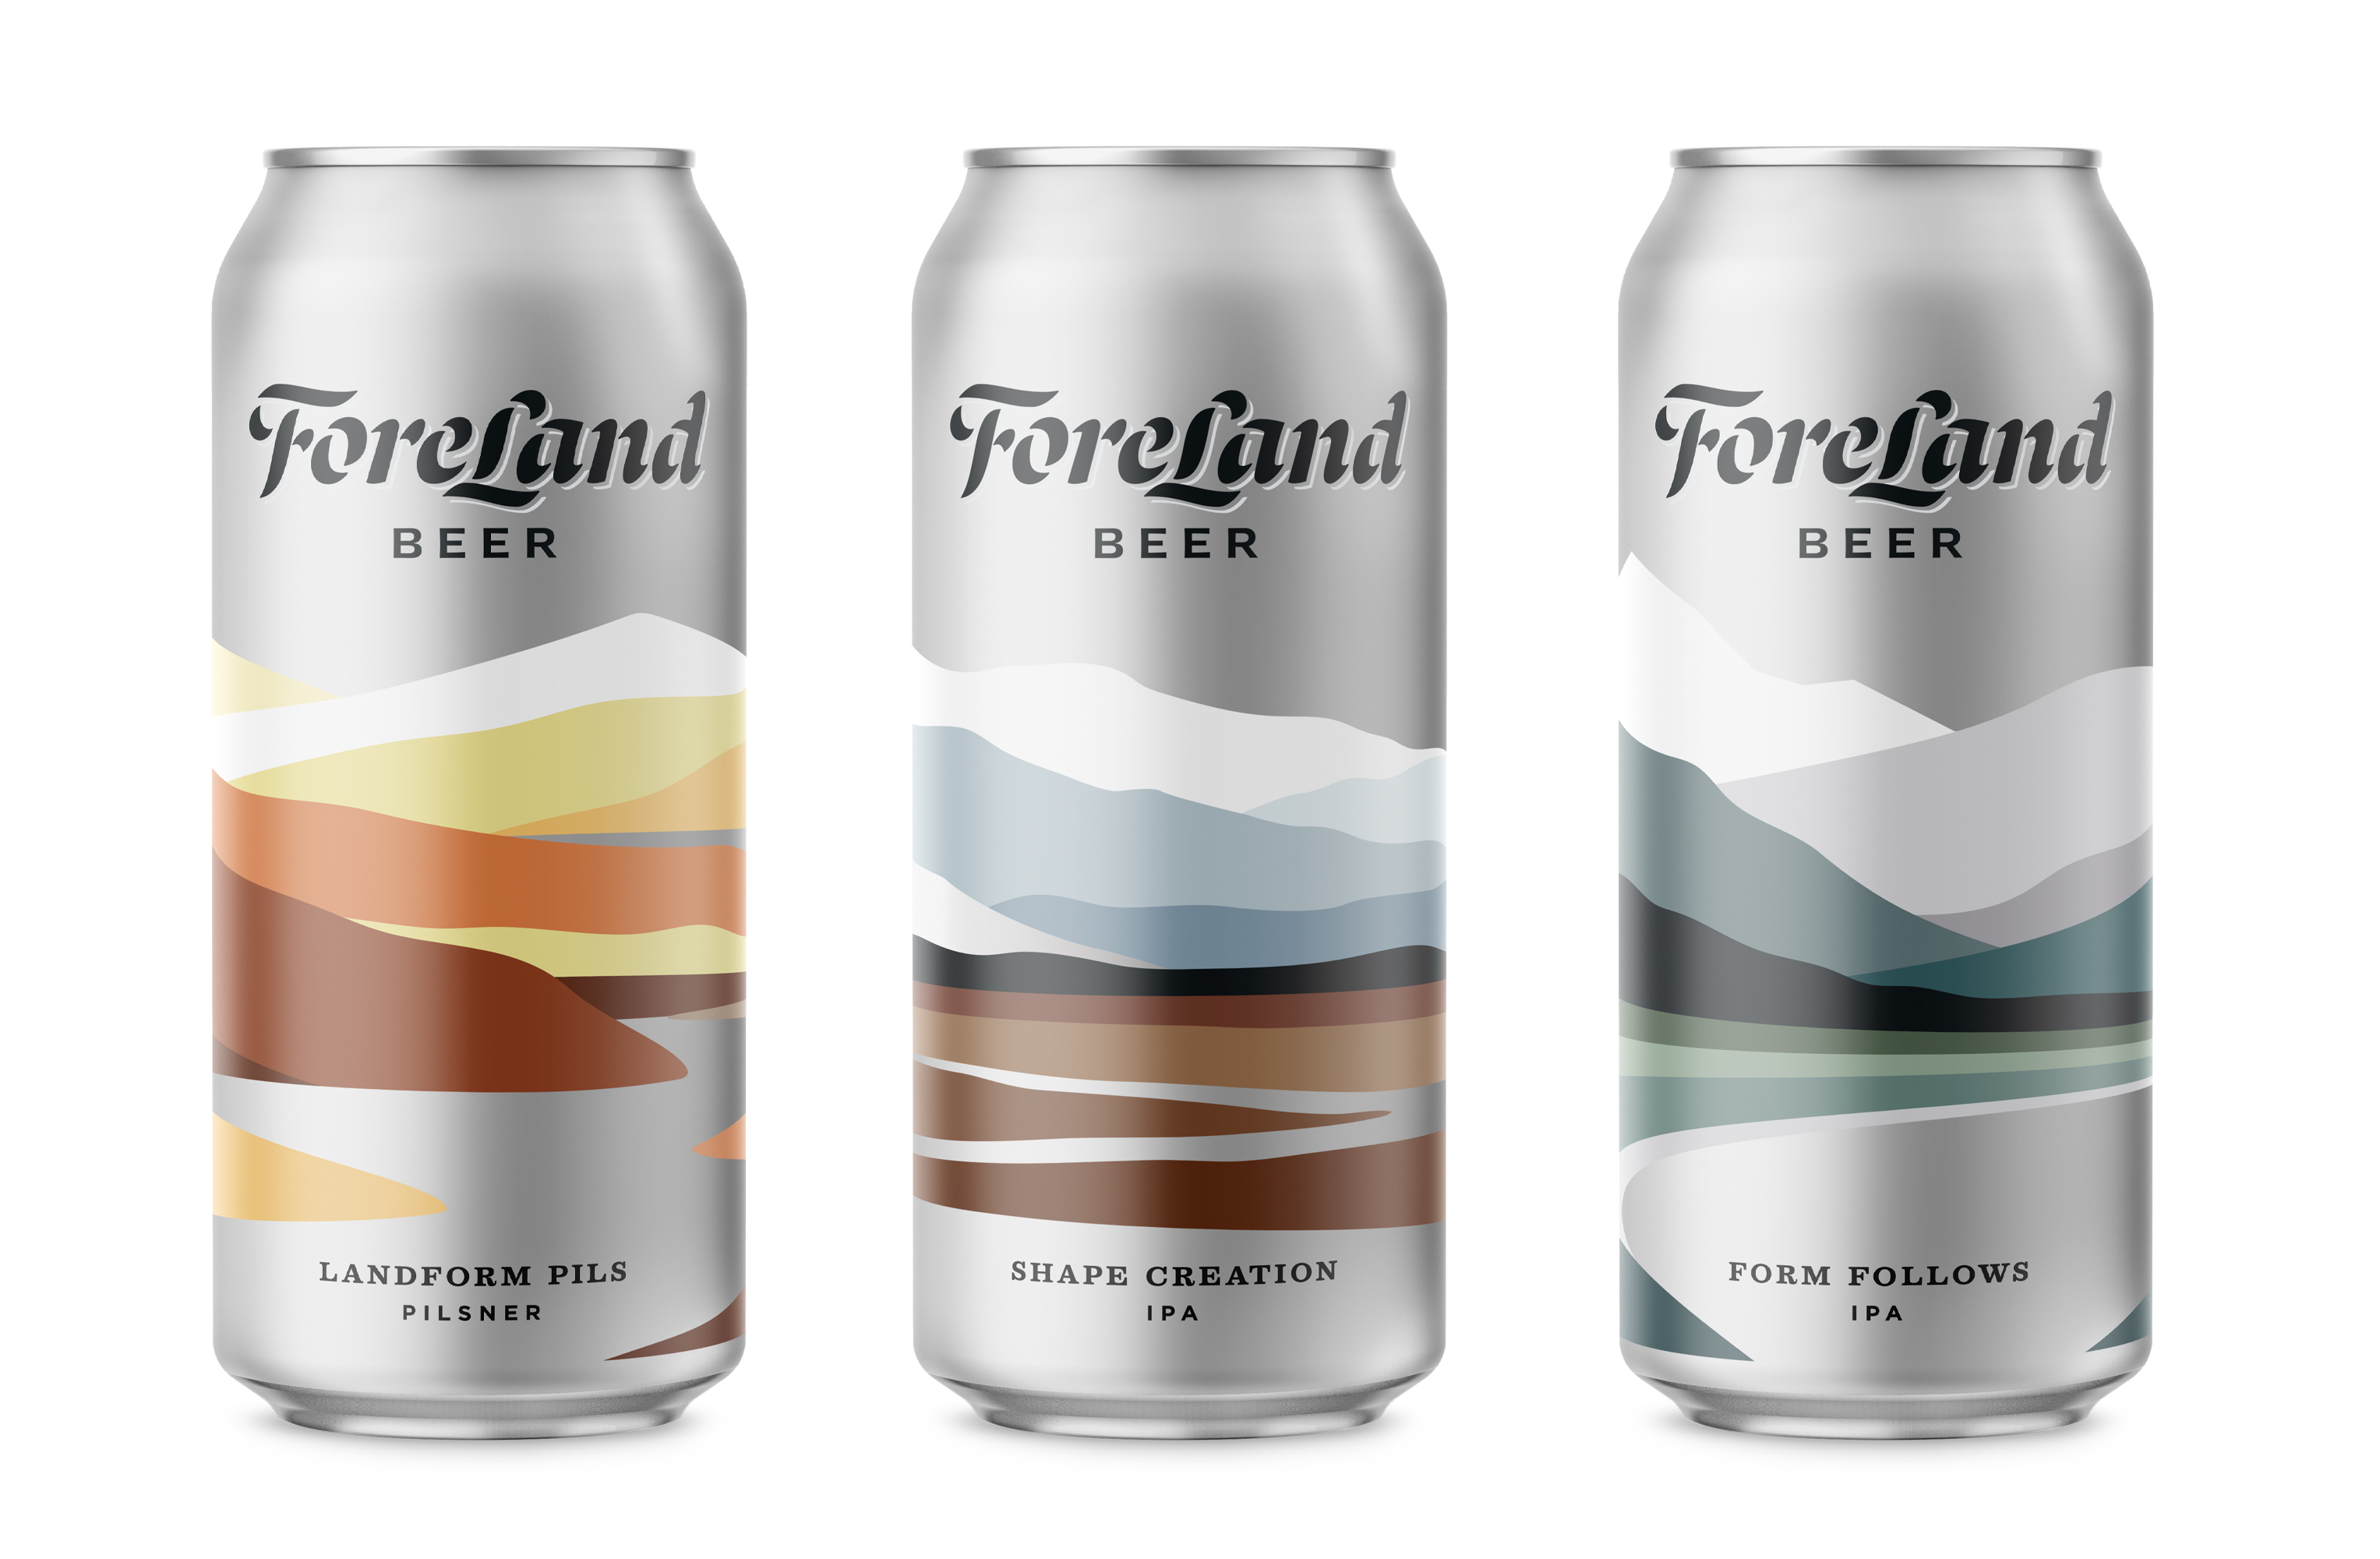 ForeLand Beer lineup of Landform Pils, Shape Creation IPA, and Form Follows IPA,